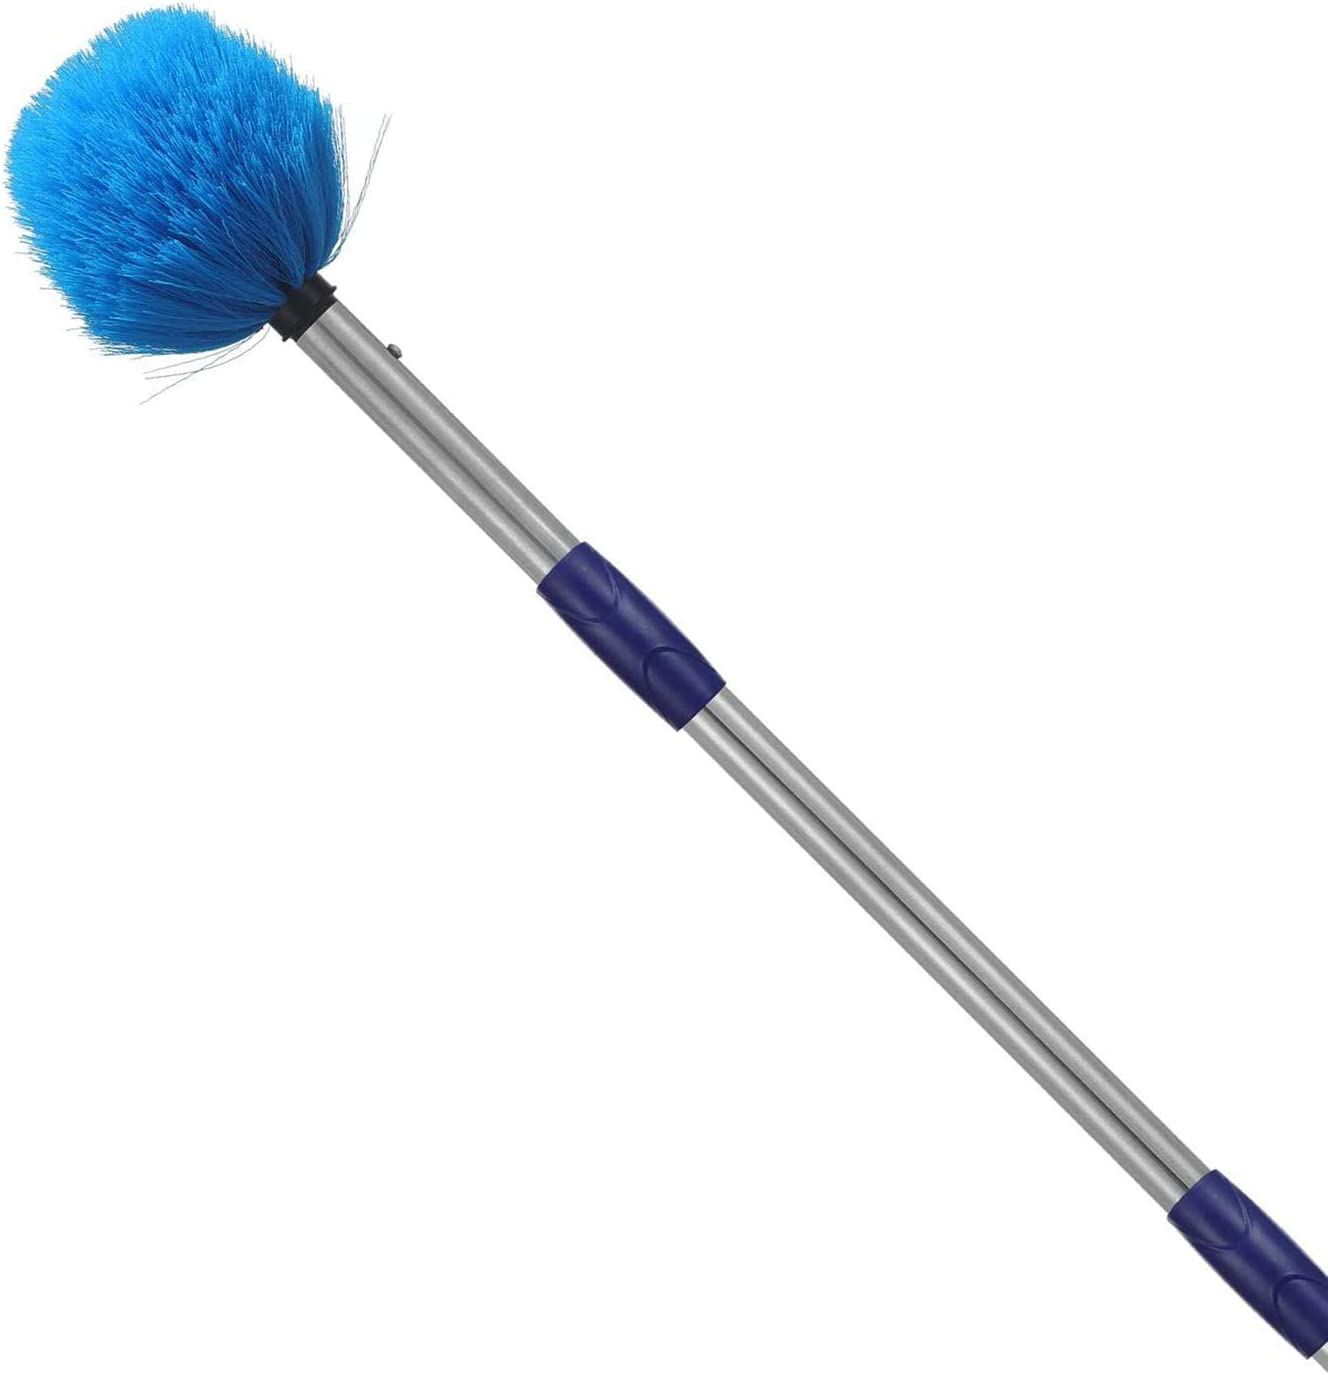 Cobweb Duster with Pole, 8ft Stainless Steel Pole Cobweb Brush with Medium-Stiff Bristles for Walls Beams Shelves Iight Fixtures and Window Screens